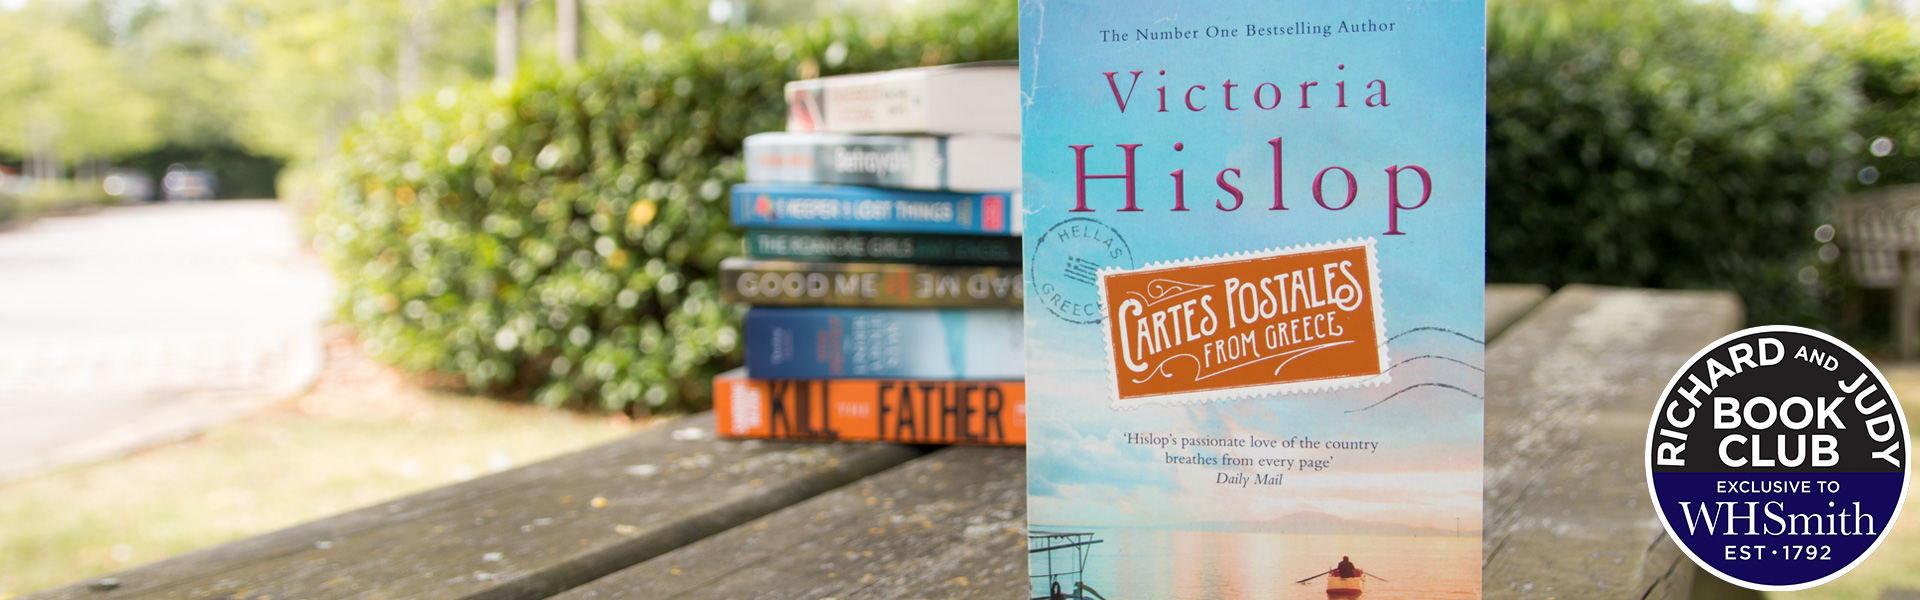 Richard and Judy Introduce Cartes Postales from Greece by Victoria Hislop